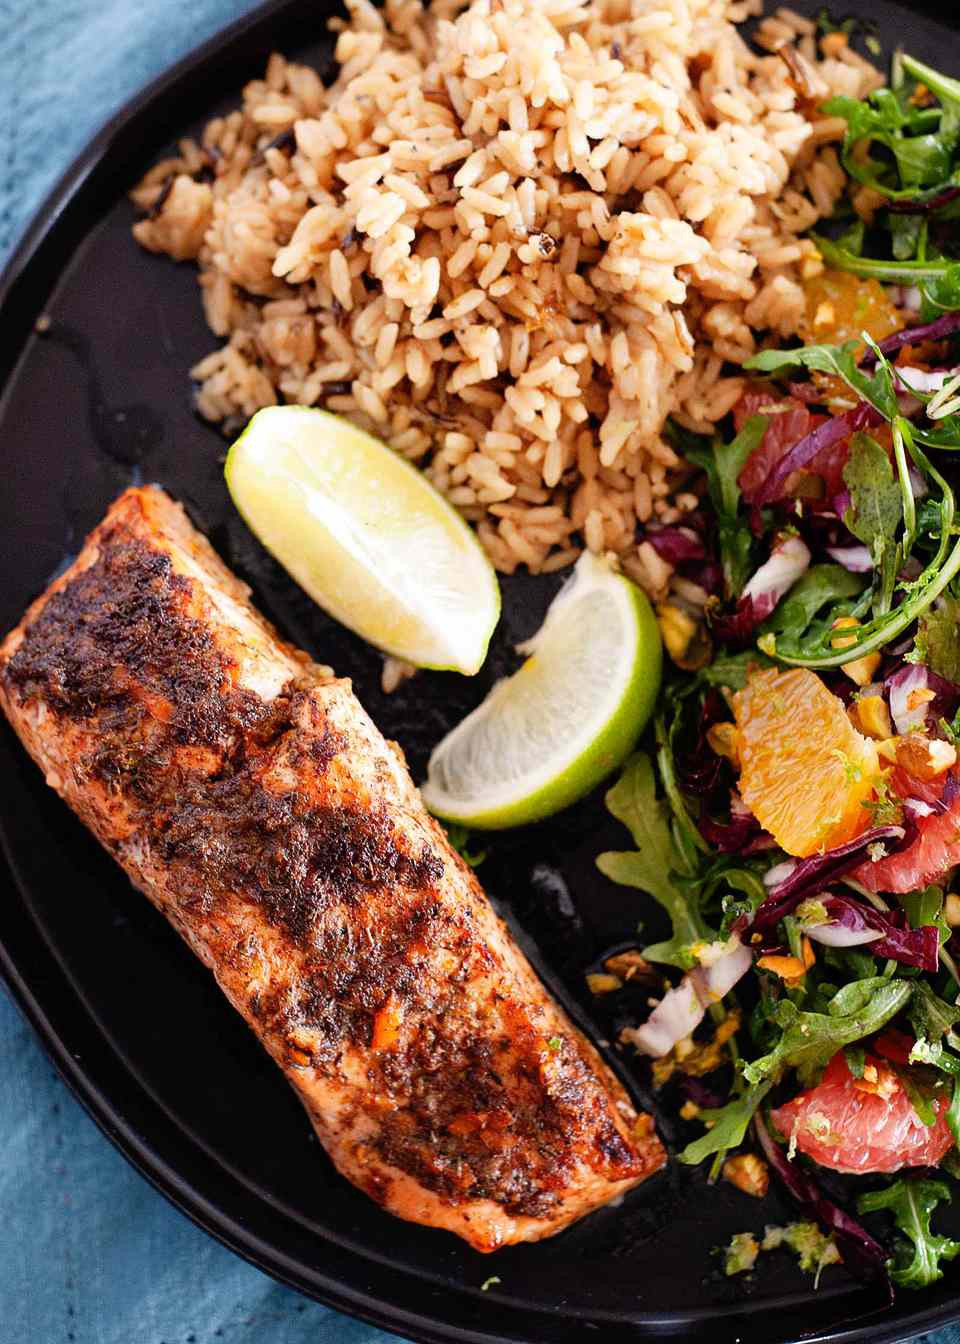 A black plate has a blackened fillet of jerk salmon on the lower left corner. Two lime wedges, red rice and a mixed green salad with citrus is also on the plate. The plate is on a blue linen.